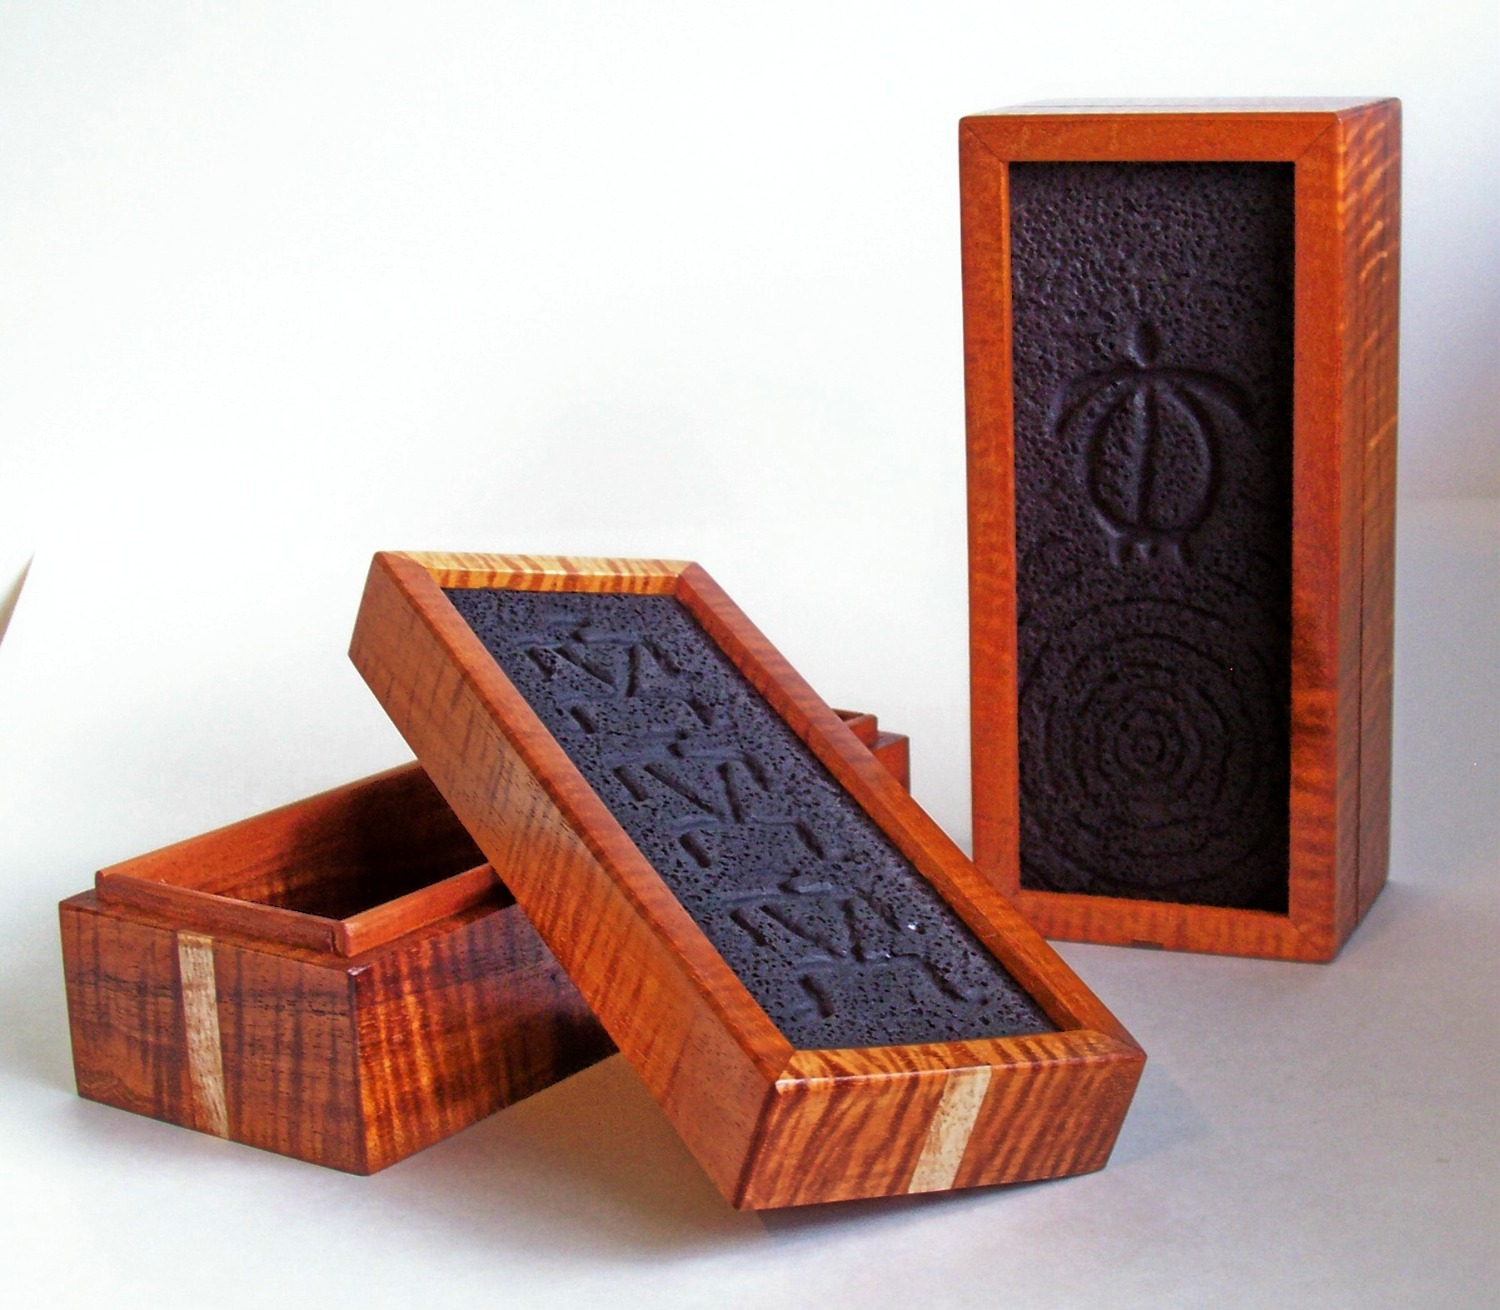 Koa Pencil Box